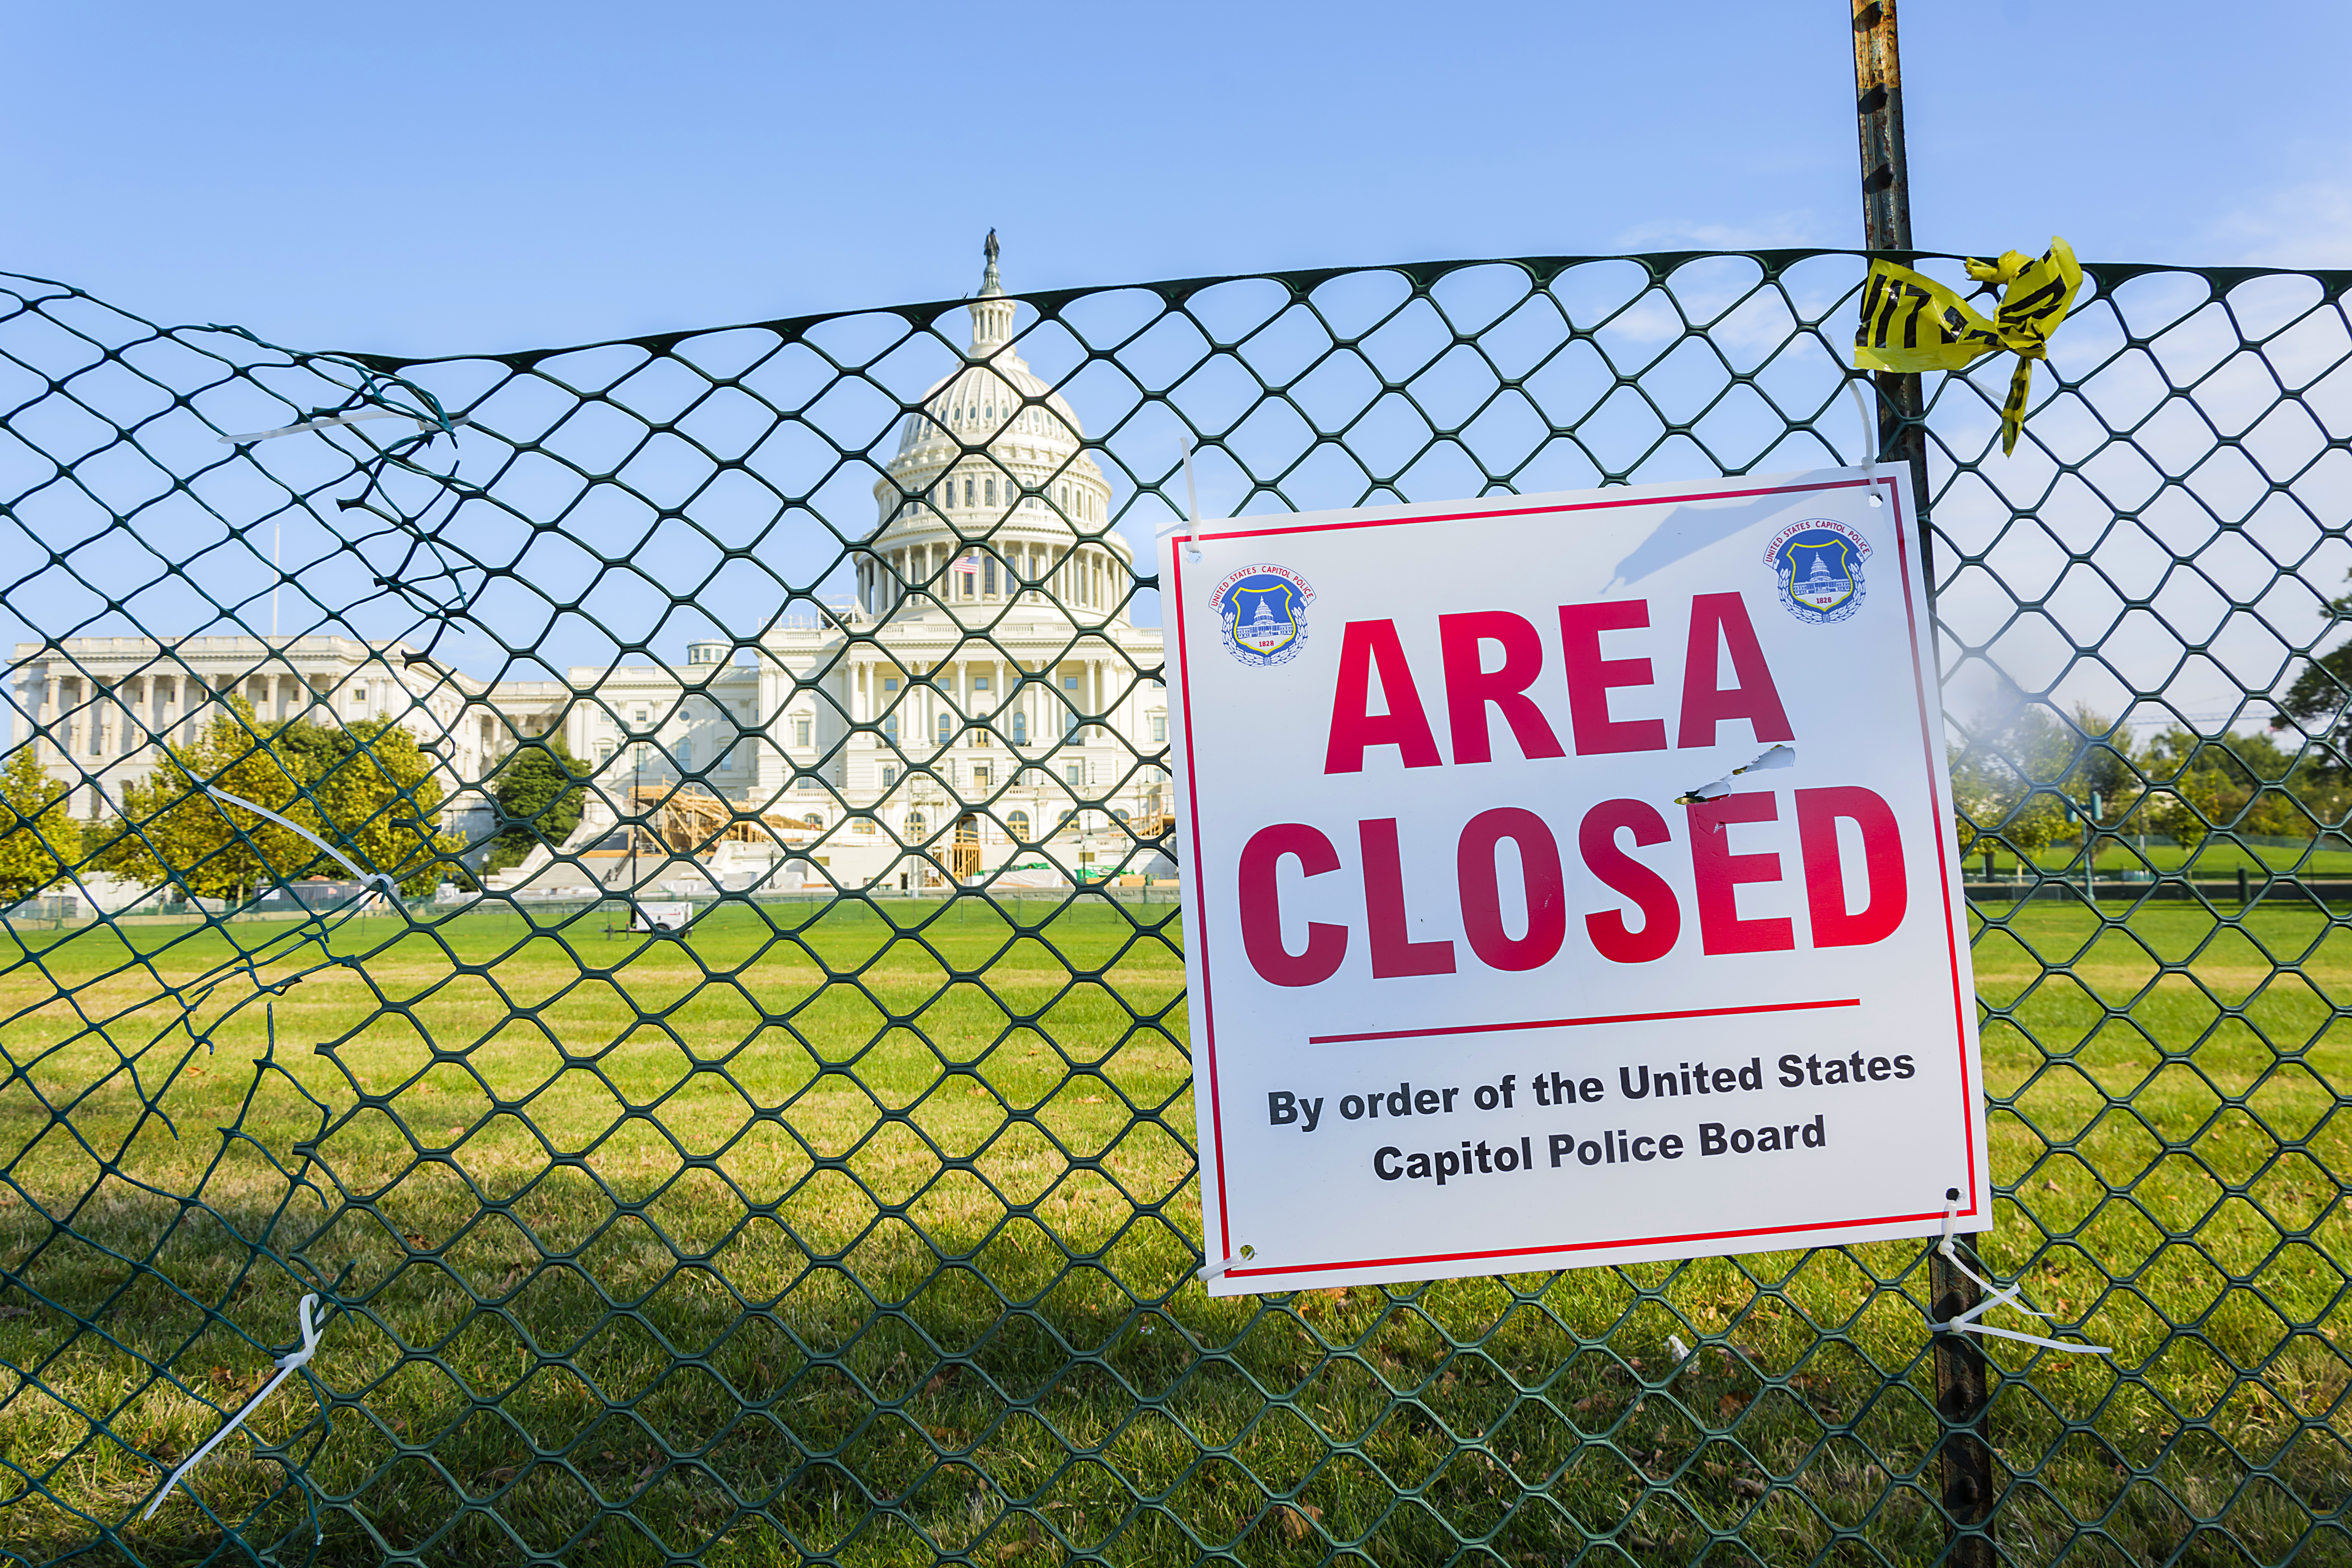 US Capitol grounds fenced off  Area Closed sign   Powers Law Firm